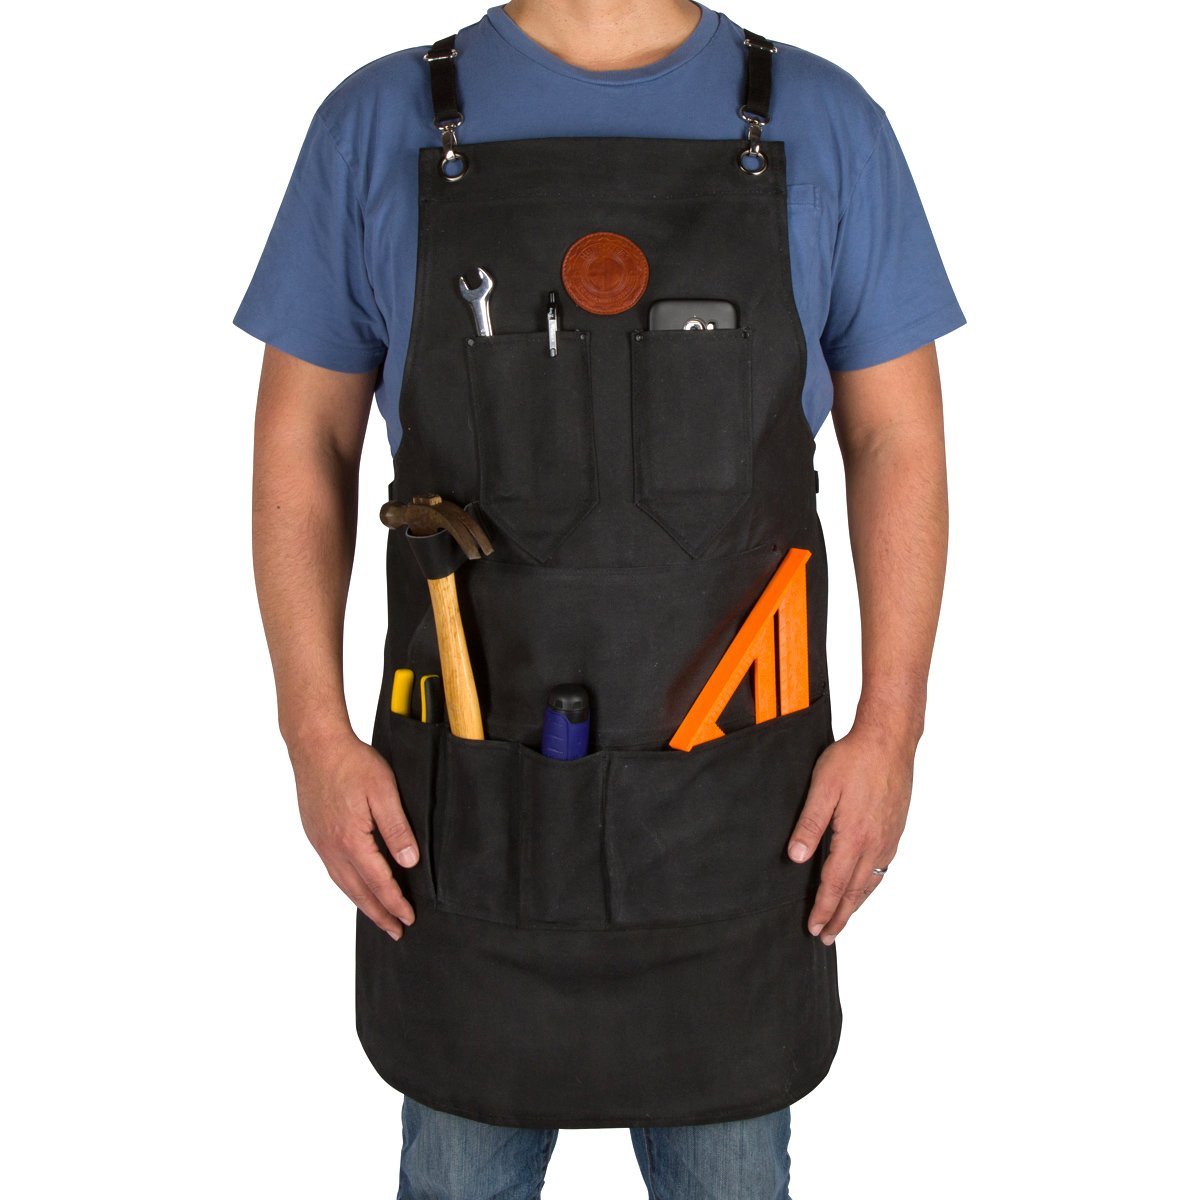 White toolmaker apron